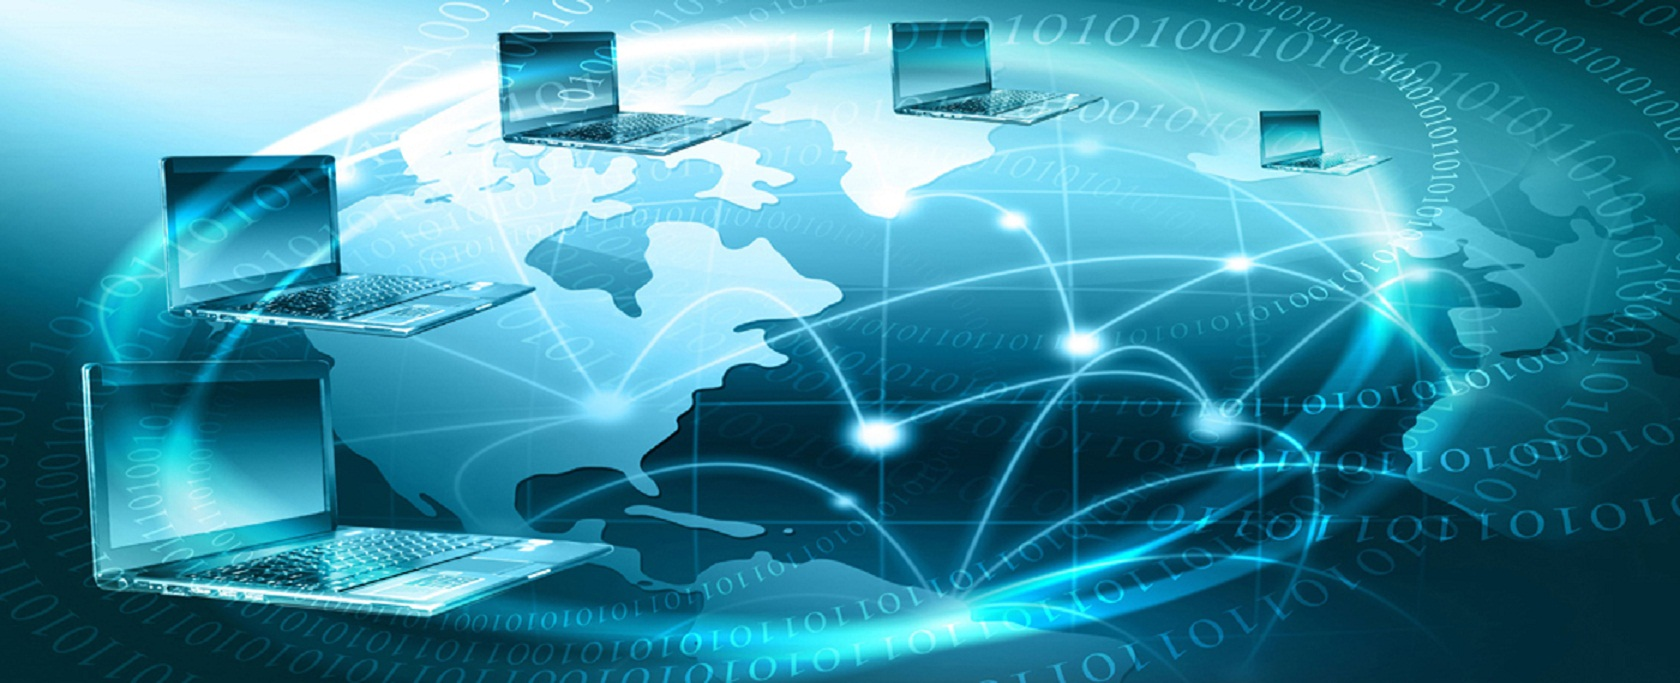 Voip is the next global connectionVoip is the next global connection